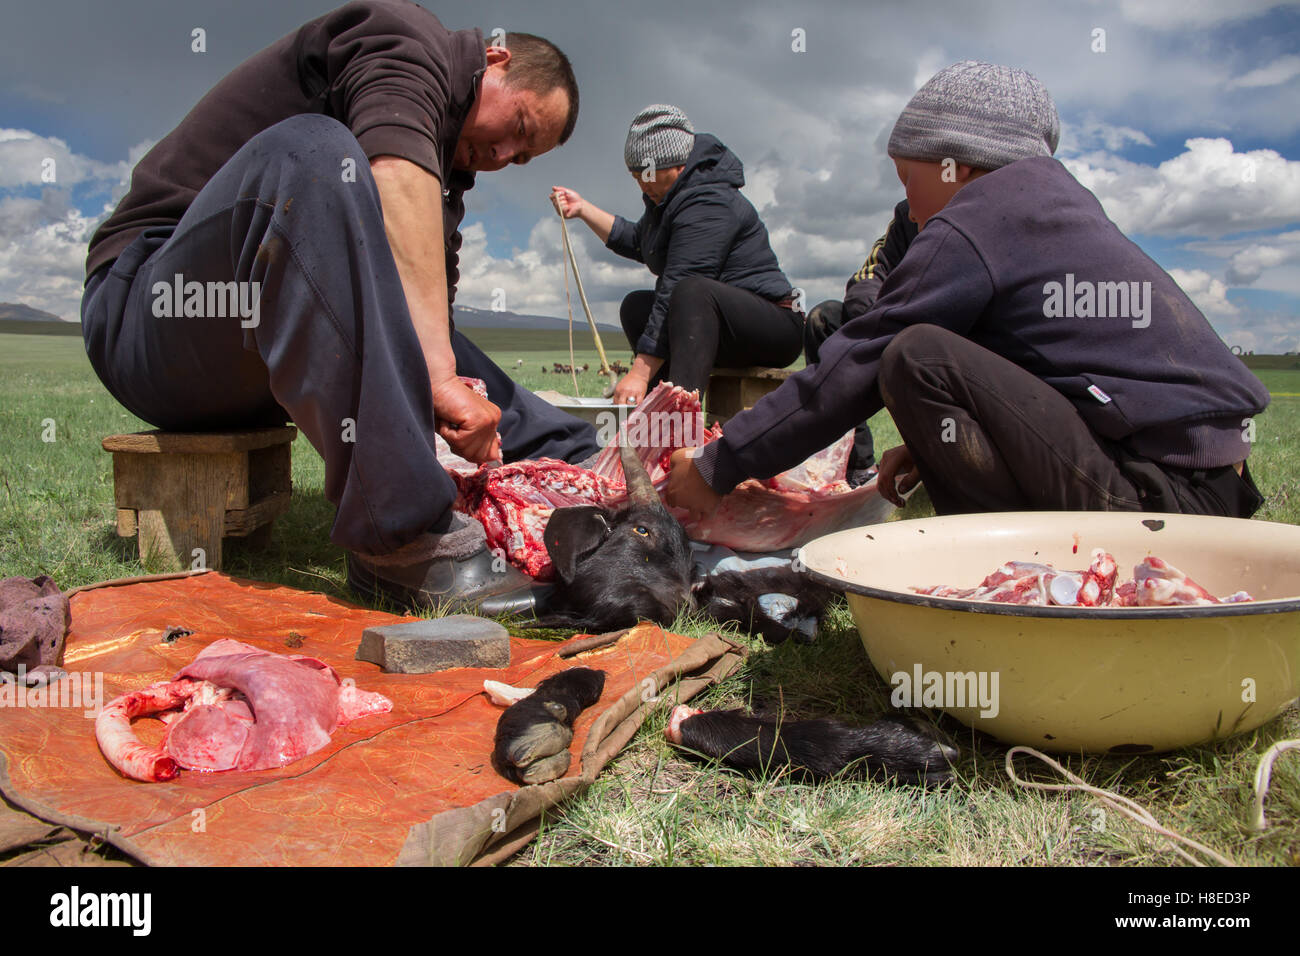 Kyrgyzstan - Nomads family cutting a goat during Ramadan  for eating at night when fasting all day - lake Song Kol - Stock Image